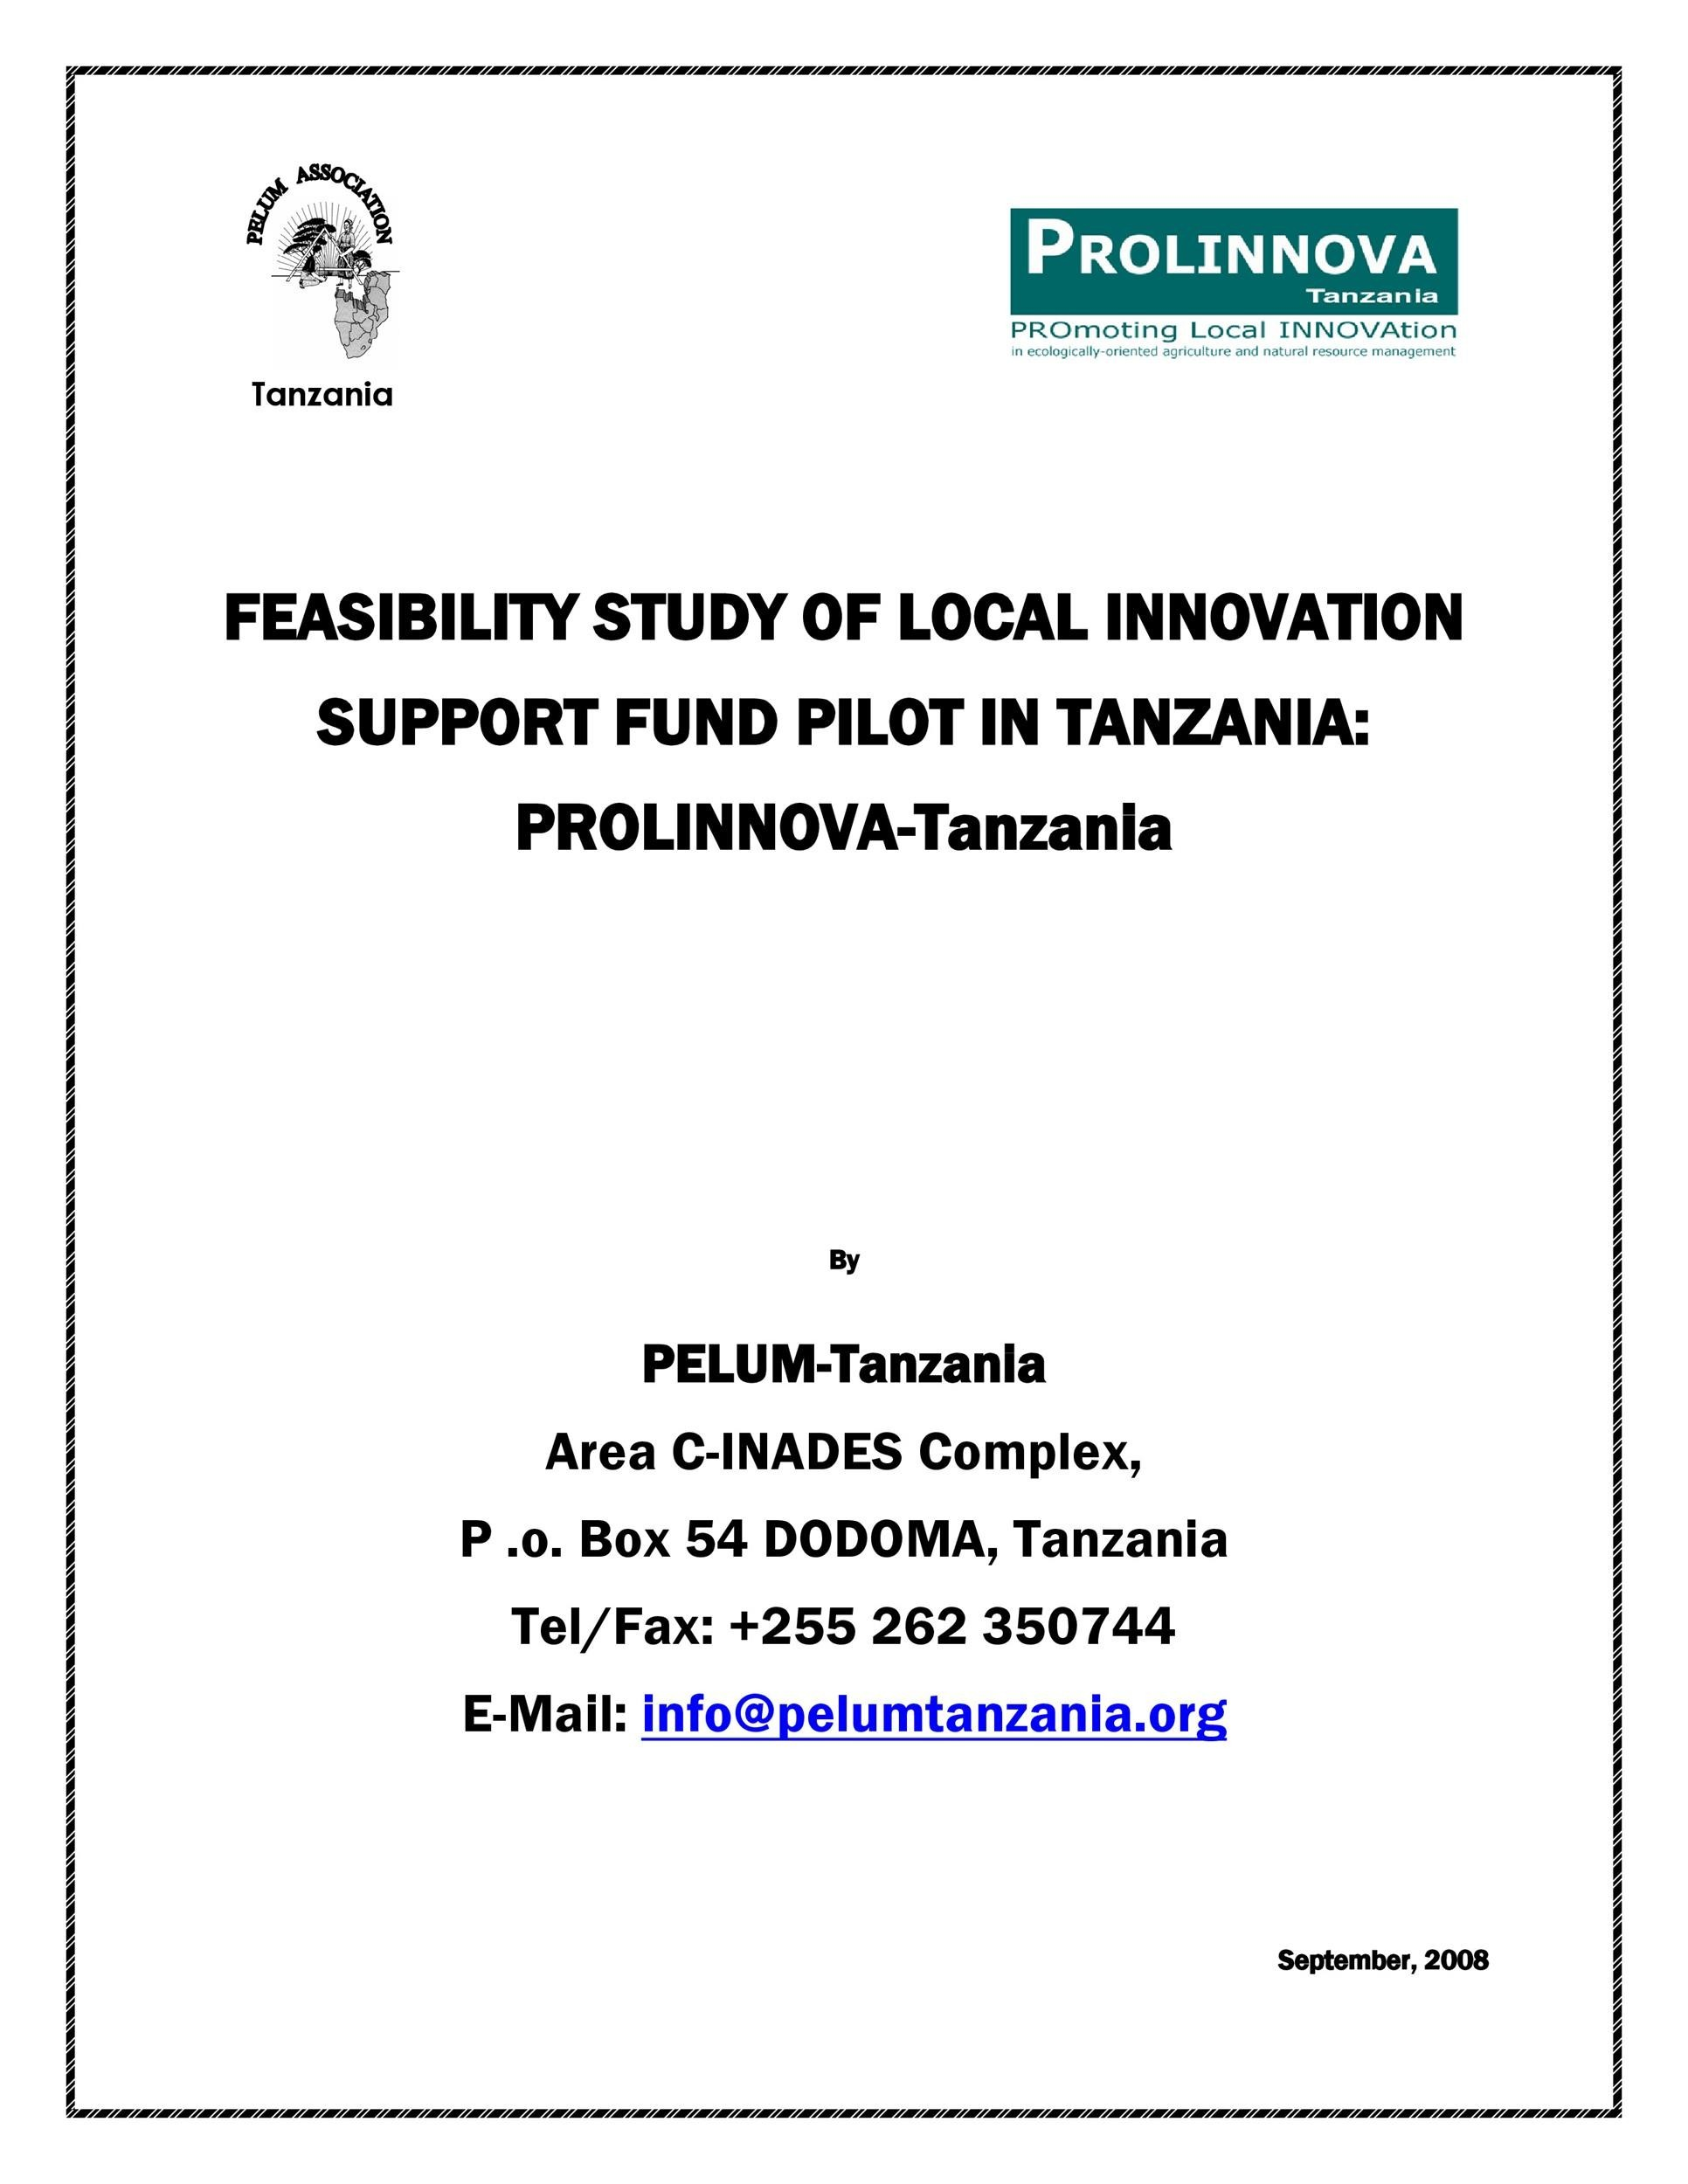 Free feasibility study example 02